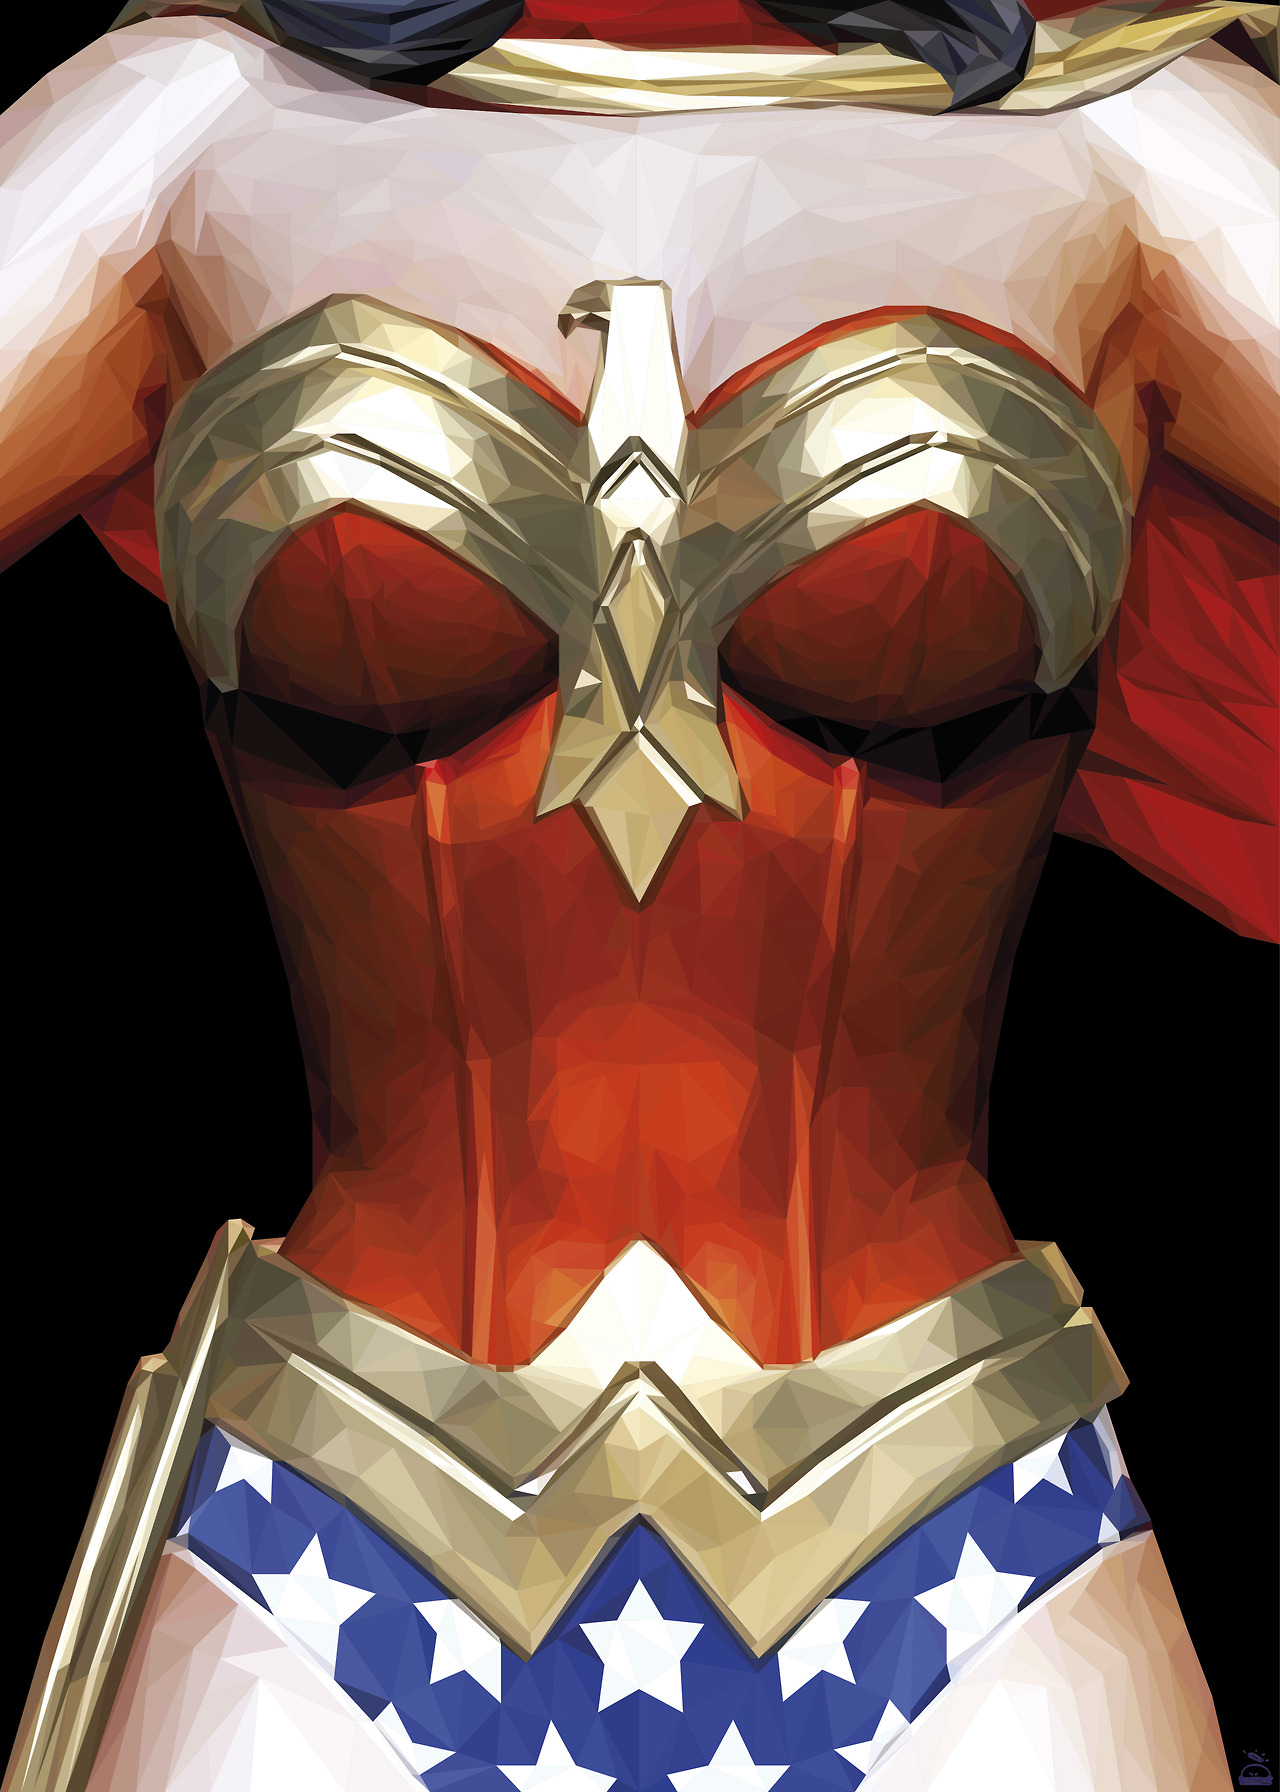 simon-delart-superhero-triangle-illustrations-wonderwoman